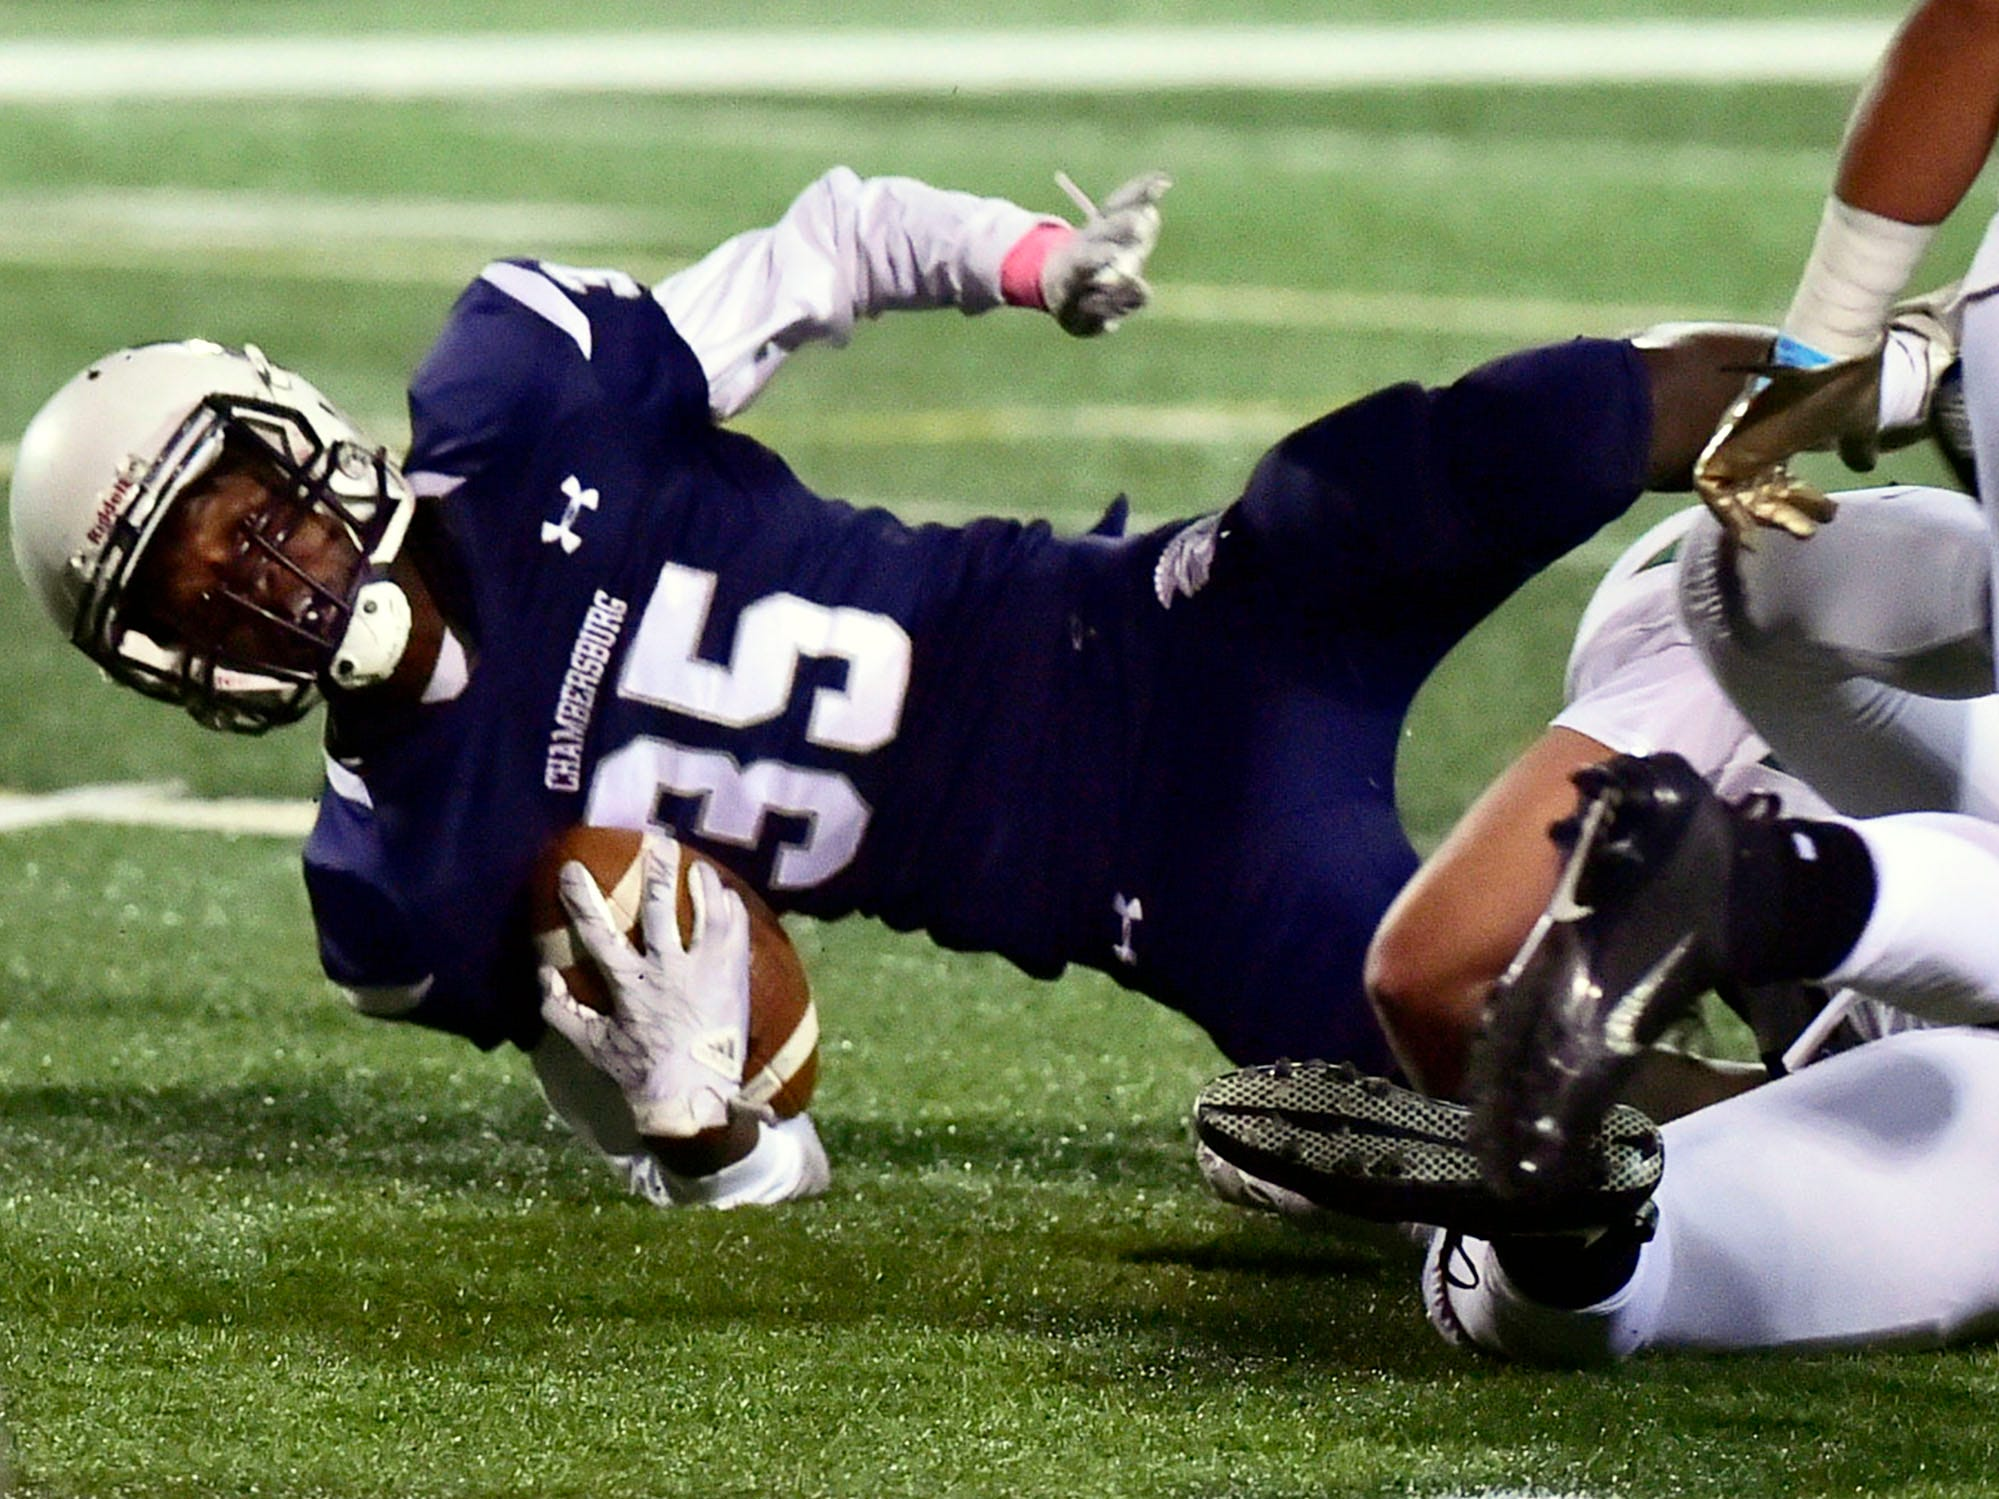 Chambersburg's DaQuan Rogers (35) is brought down after a short run. Chambersburg lost to Central Dauphin 35-14 in PIAA football on Friday, Oct. 19, 2018.